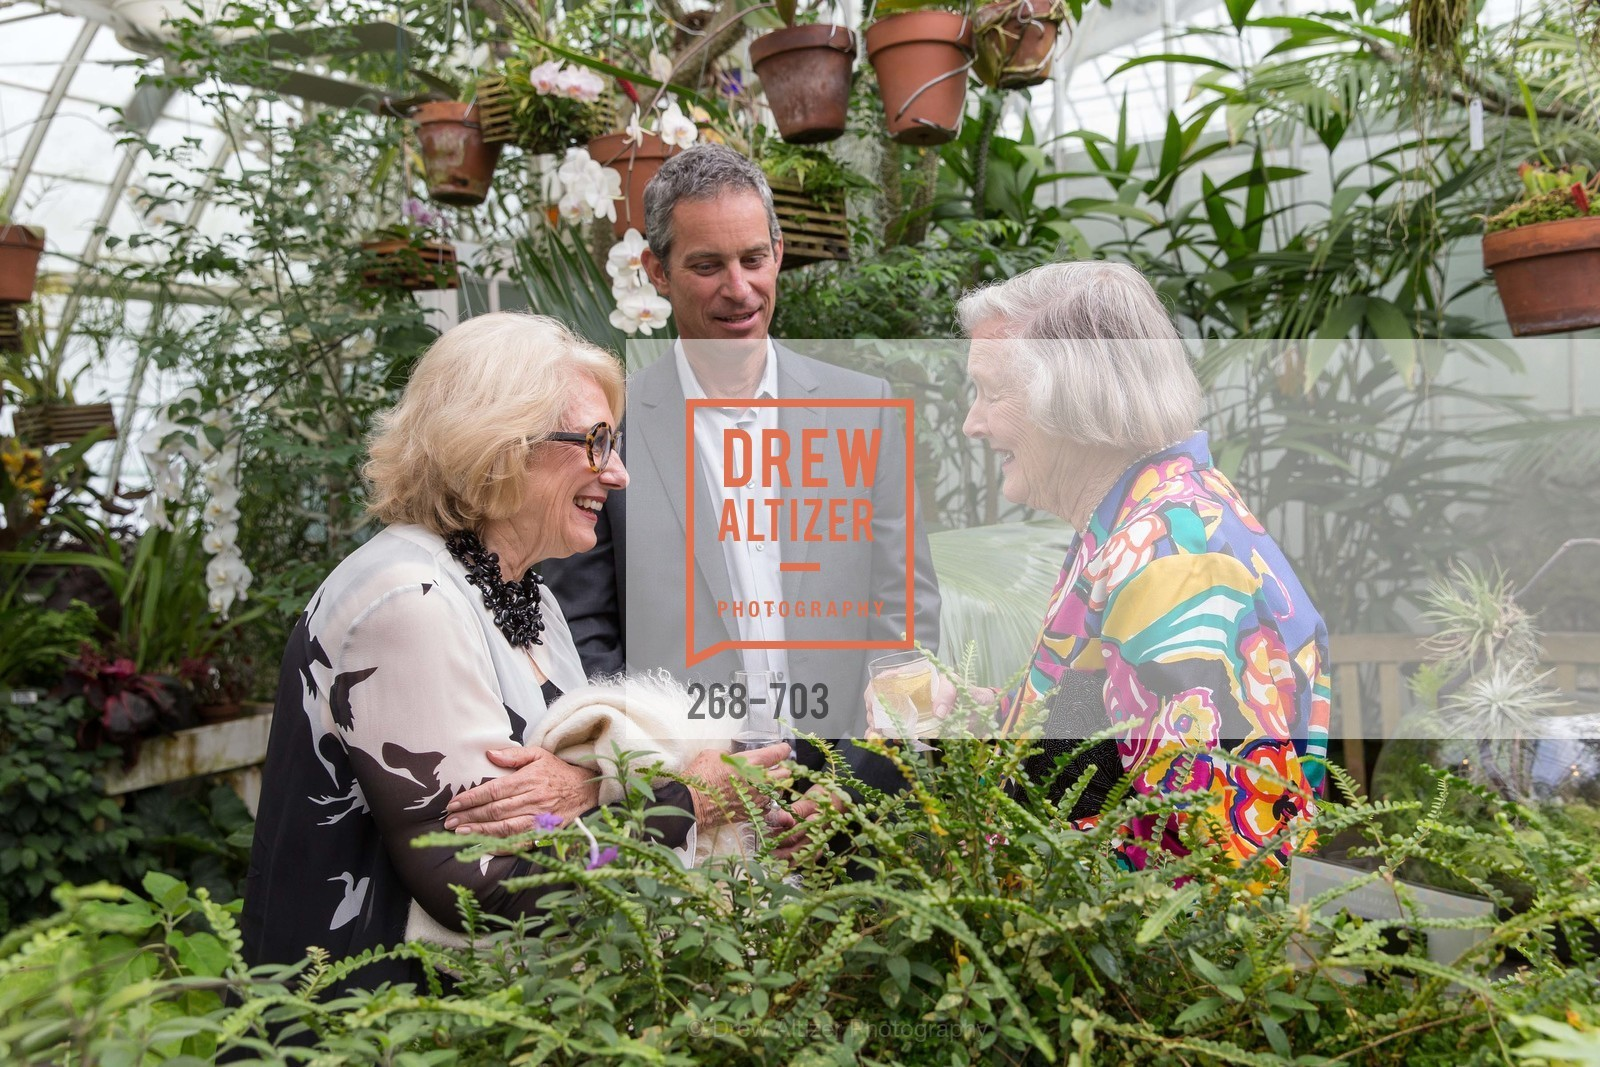 Cynthia Molstead, Eric Anderson, Marianne Peterson, CONSERVATORY OF FLOWERS Presents